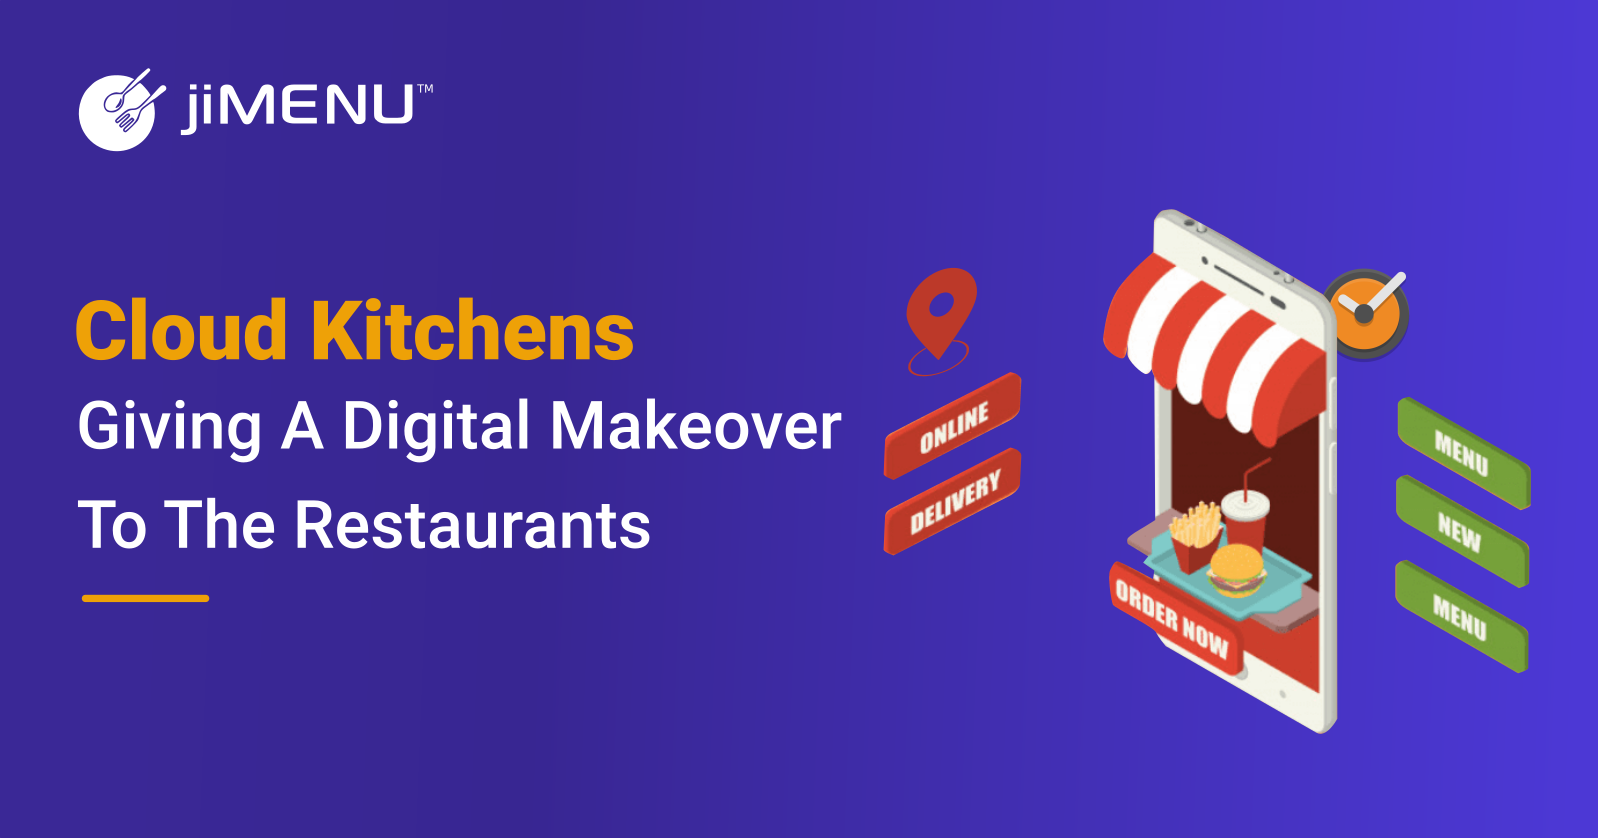 How are the Cloud Kitchens giving a Digital Makeover to the Restaurants?